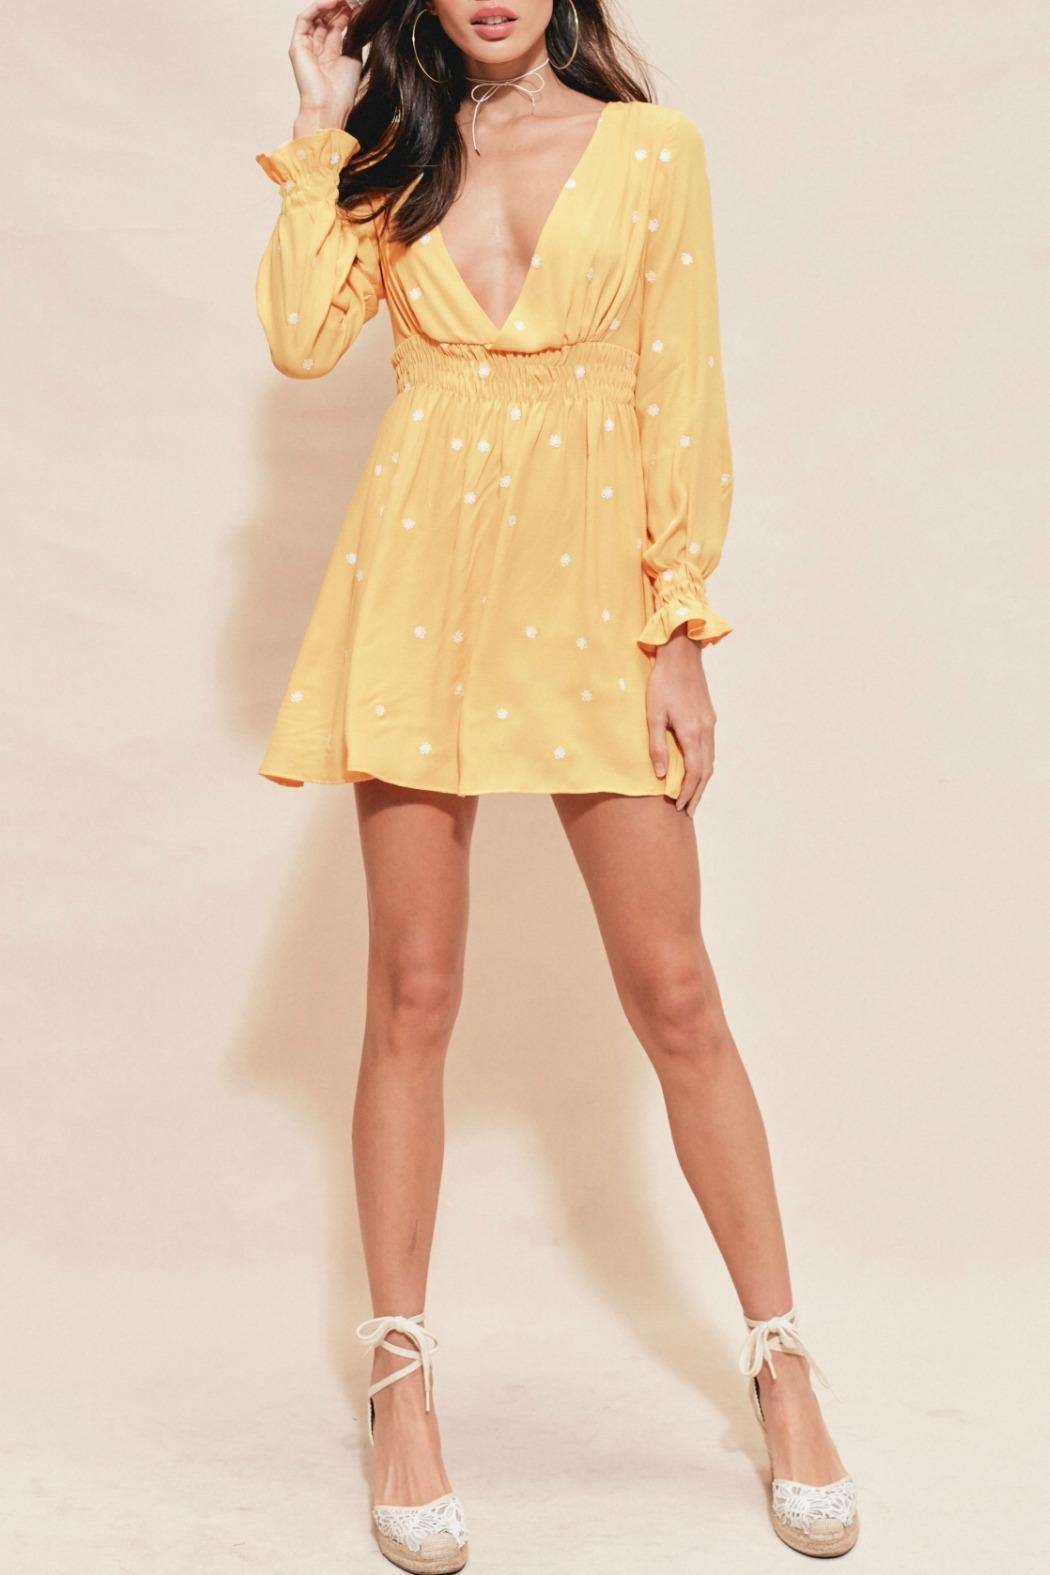 FOR LOVE & LEMONS Chiquita Embroidered Dress - Main Image